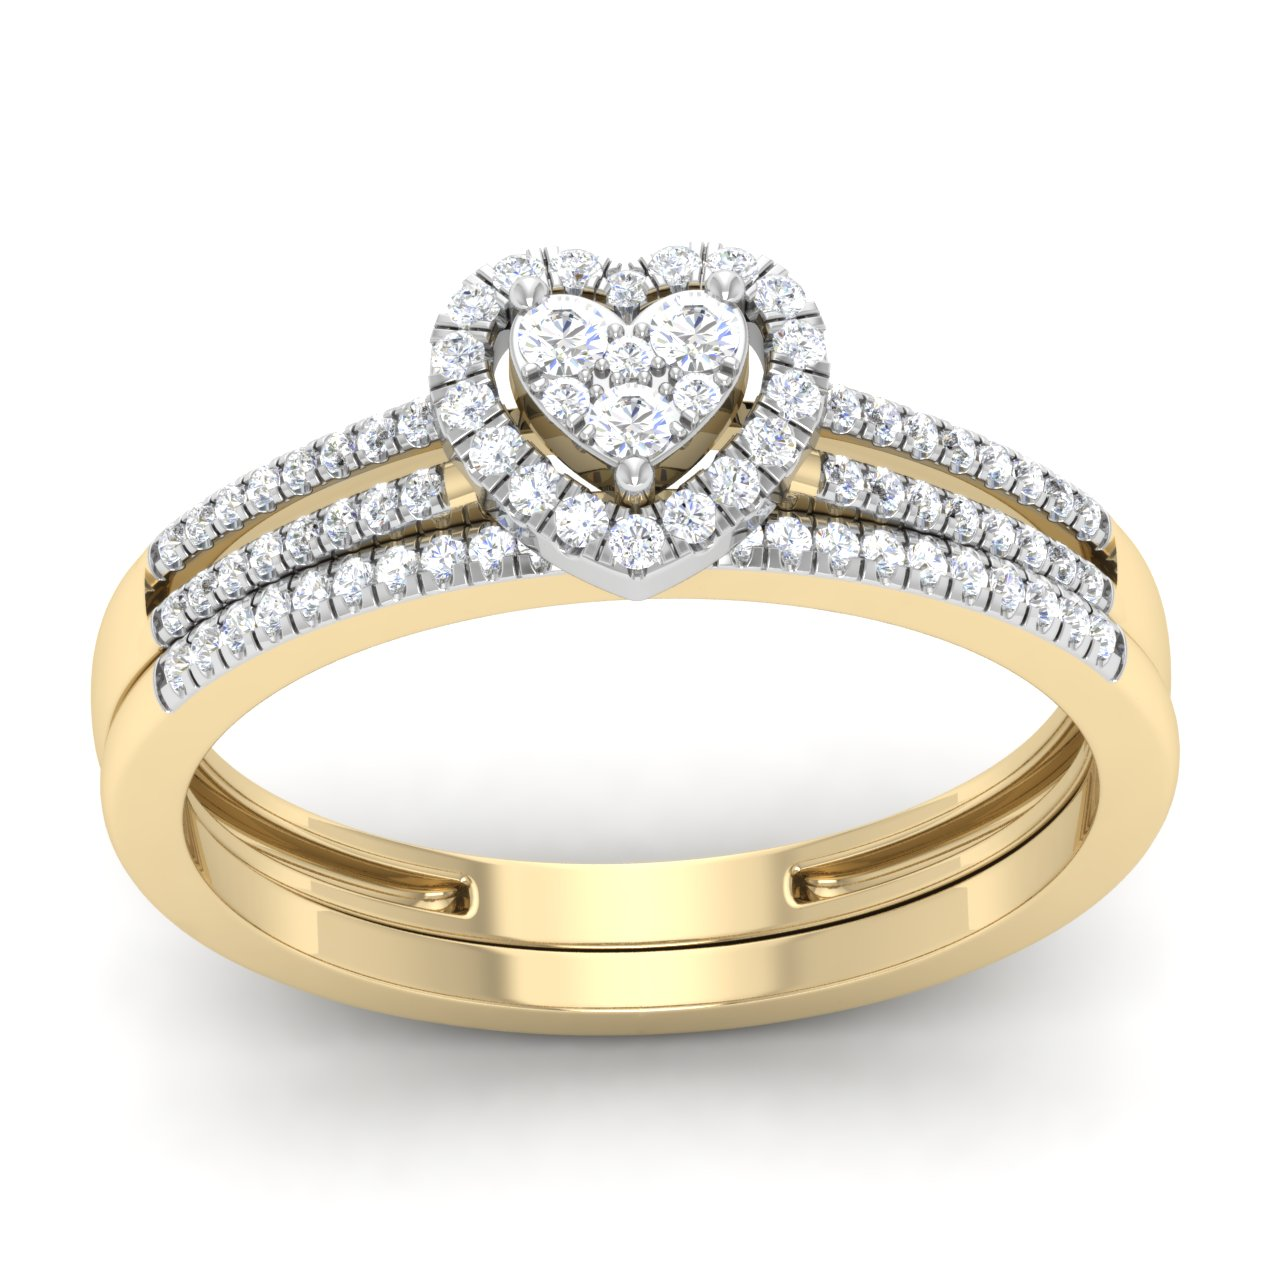 1 4Ct Round Cut Natural Diamond Heart Frame Engagement Ring Set in 10K Yellow Gold by Arina jewelry